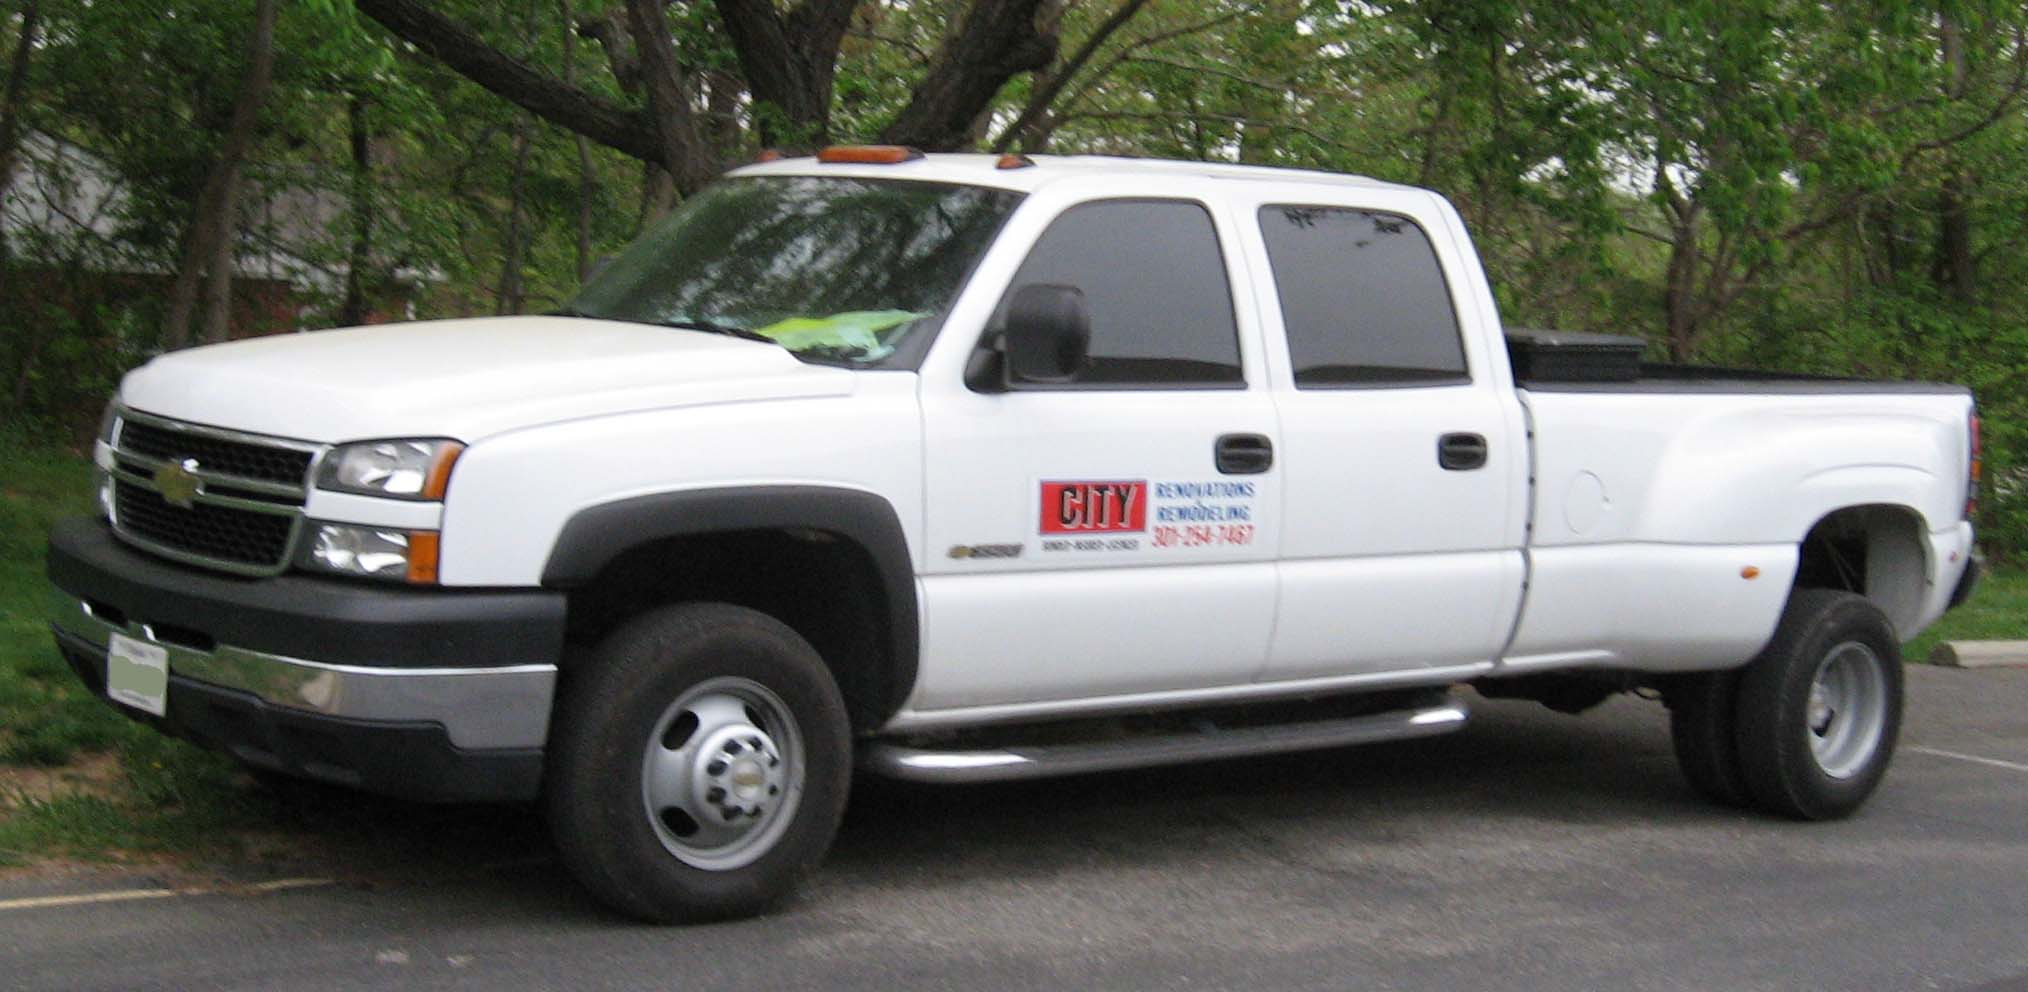 File:Chevrolet-Silverado-3500.jpg - Wikimedia Commons